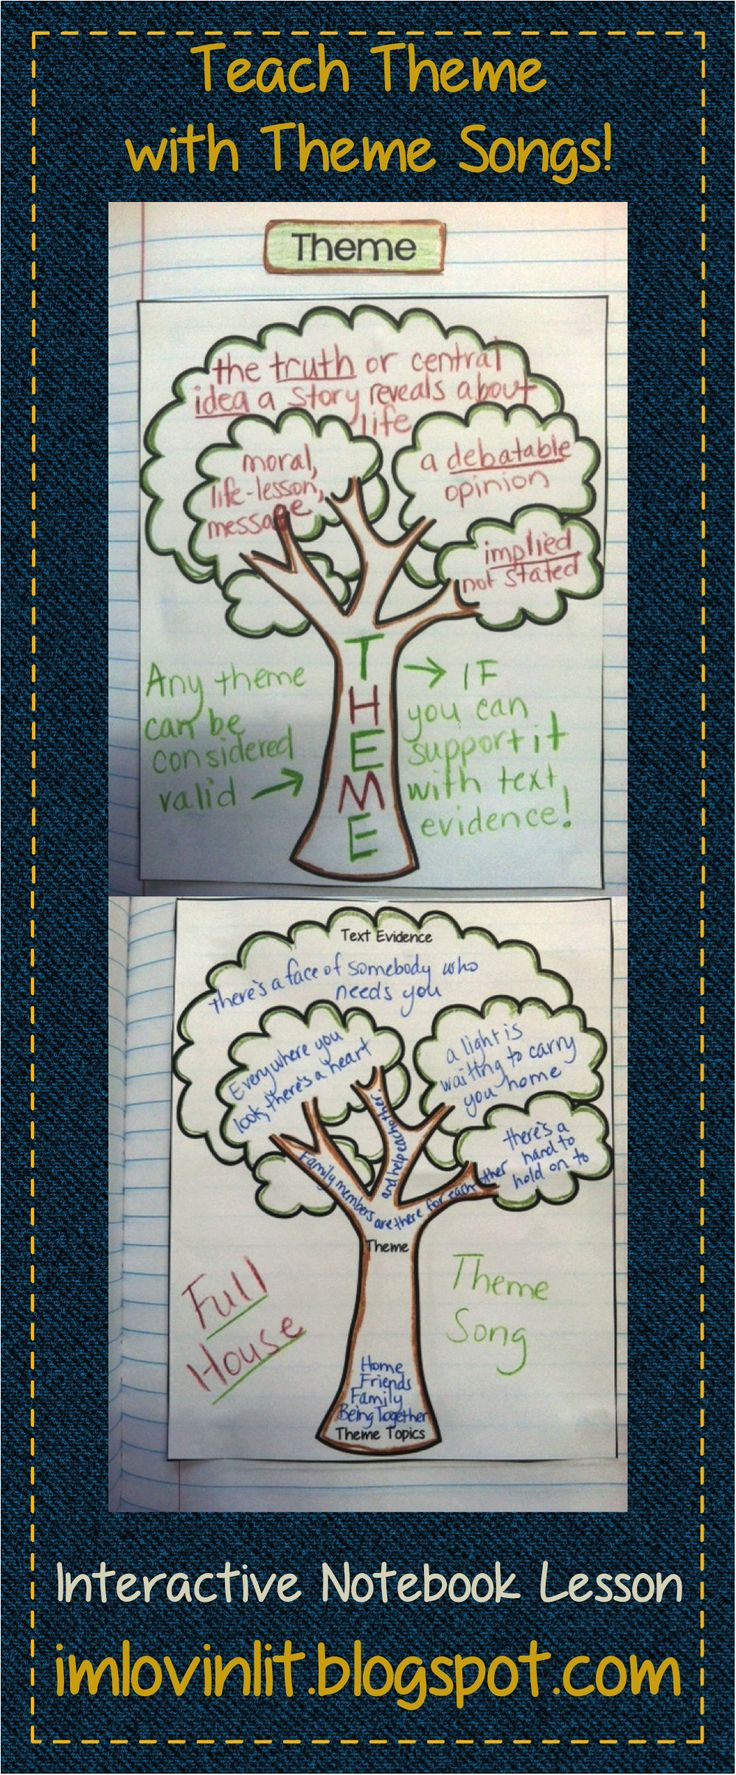 "Teaching Theme - Link to blog post with several ideas for interactive reading notebooks. First tree defines theme; second tree used to determine theme. Write the topics covered in the tree trunk (Home, Family, etc.), write a theme statement in the branches, and write text evidence of the theme in the tree's leaves. Practice finding the theme by watching Youtube videos of ""theme songs"" from old sitcoms and determining the ""theme"" of the show from the theme song!"